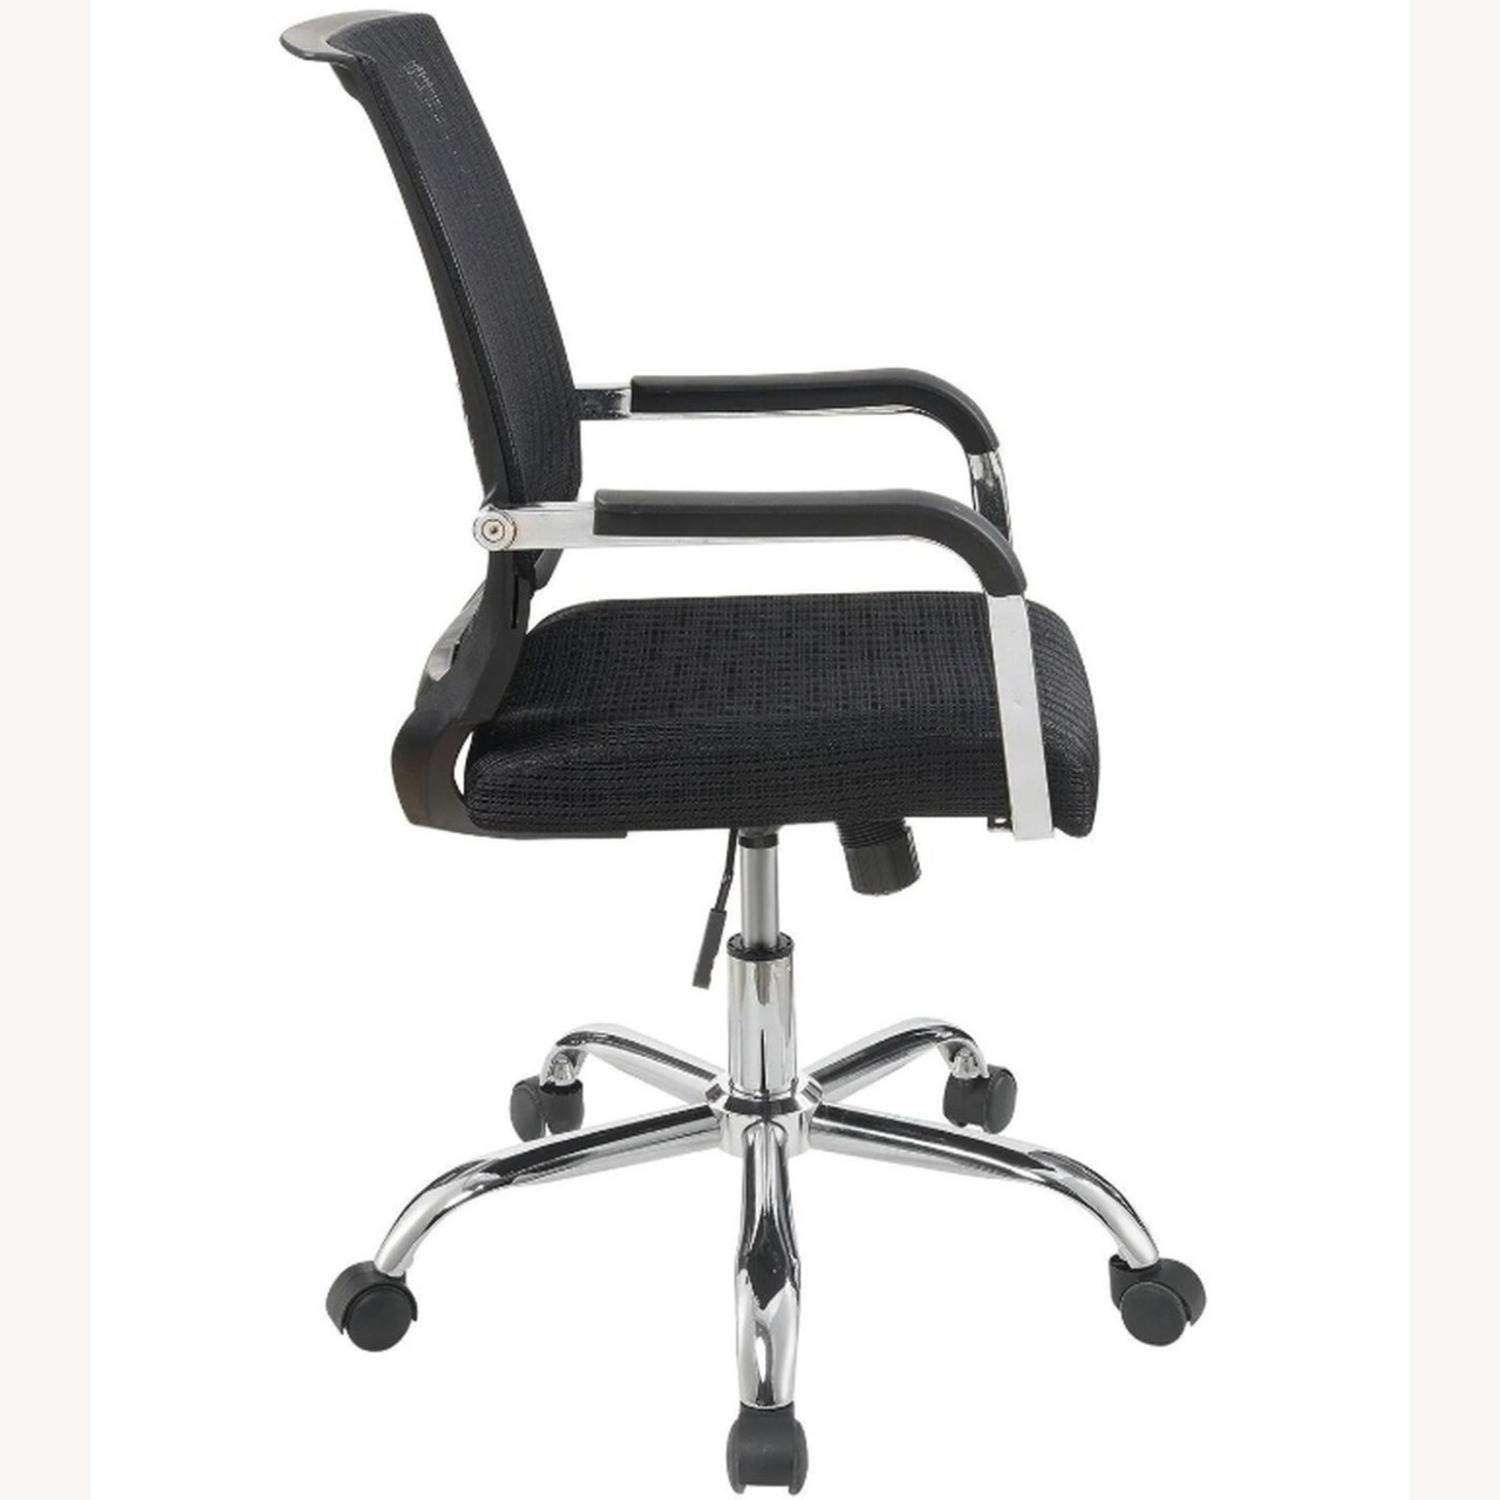 Office Chair In Black Fabric Finish W/ Mesh Back - image-3